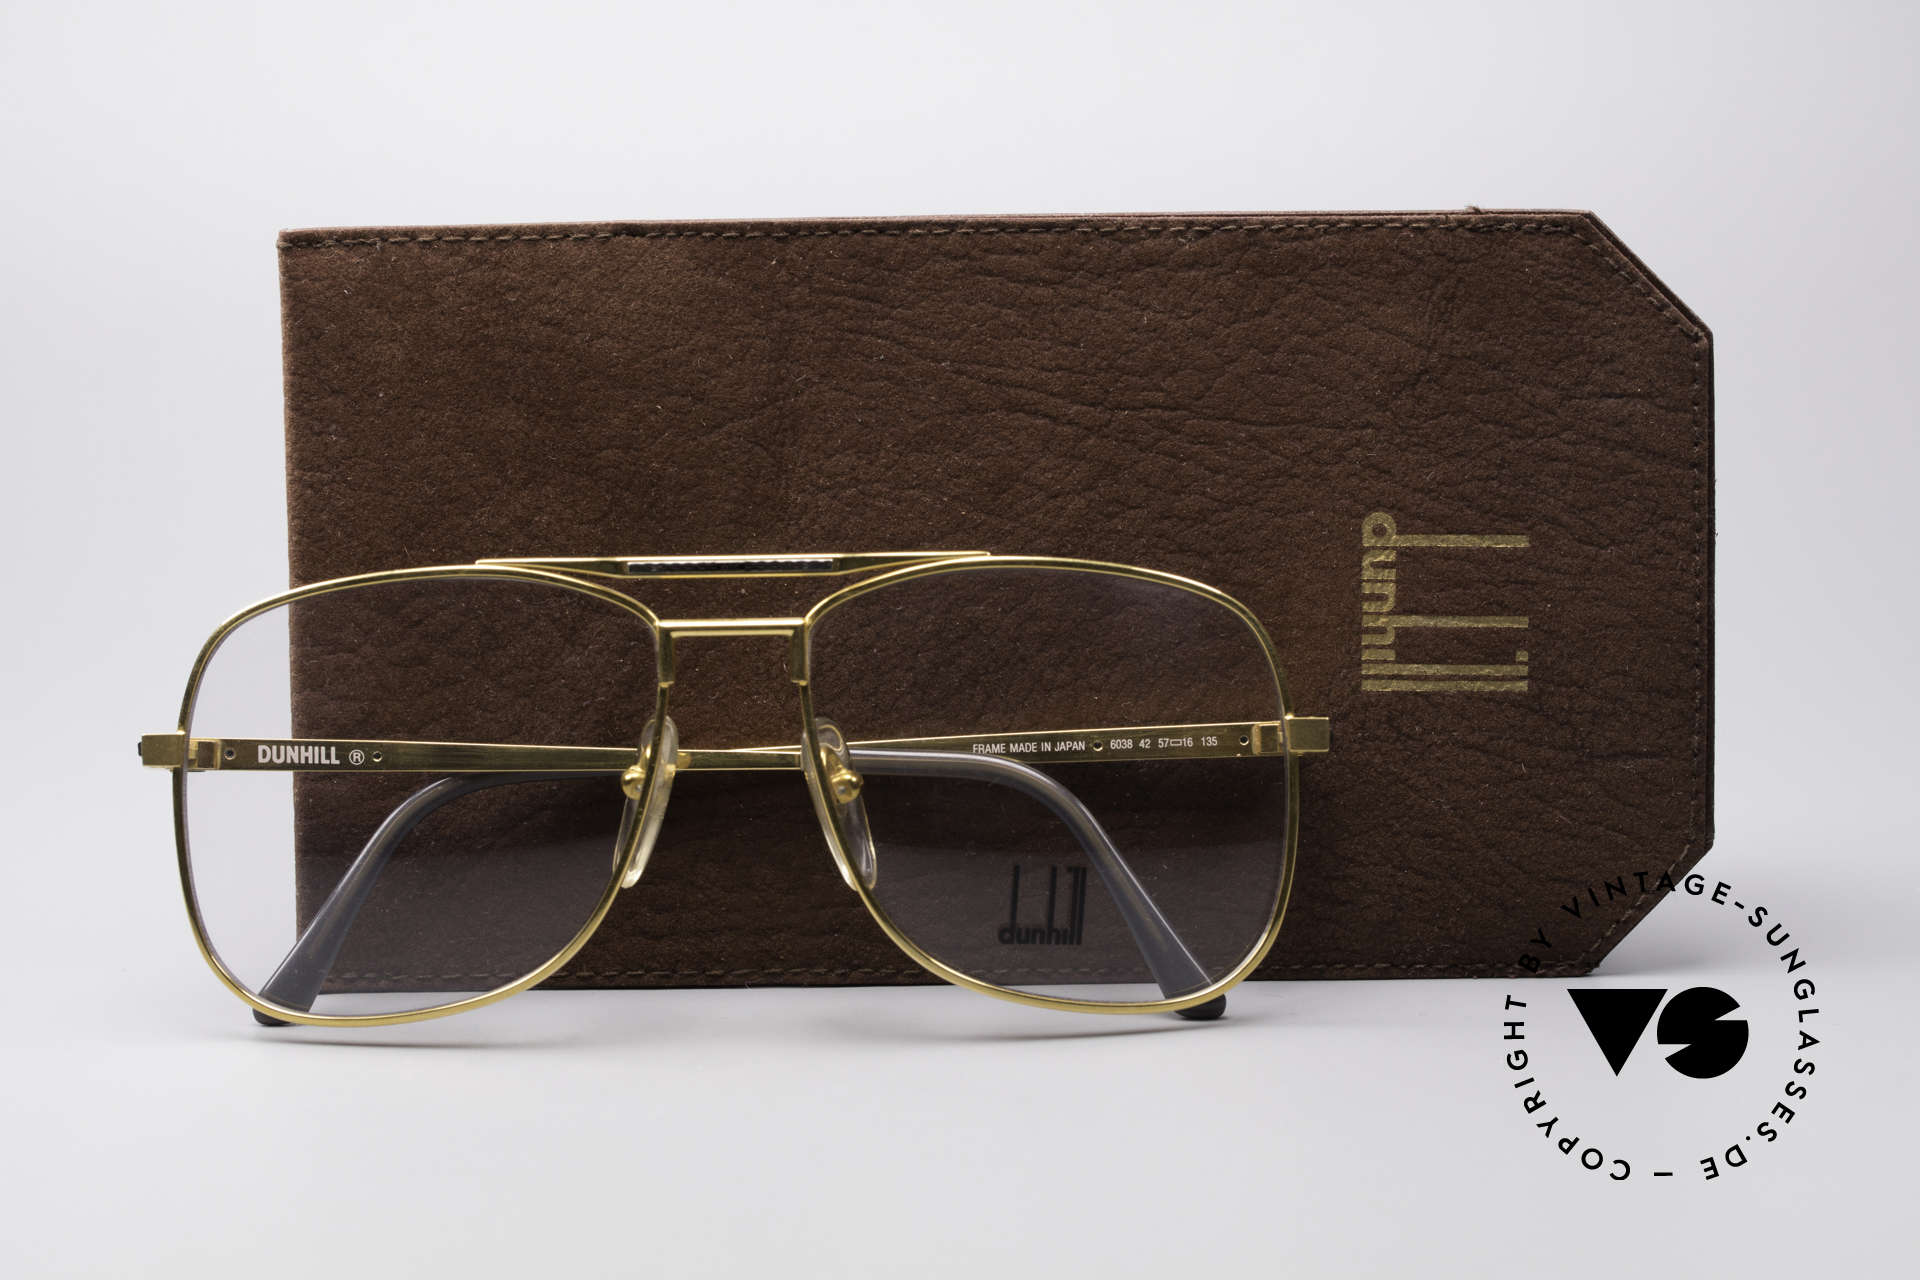 Dunhill 6038 Gold-Plated Titanium Frame, Size: medium, Made for Men